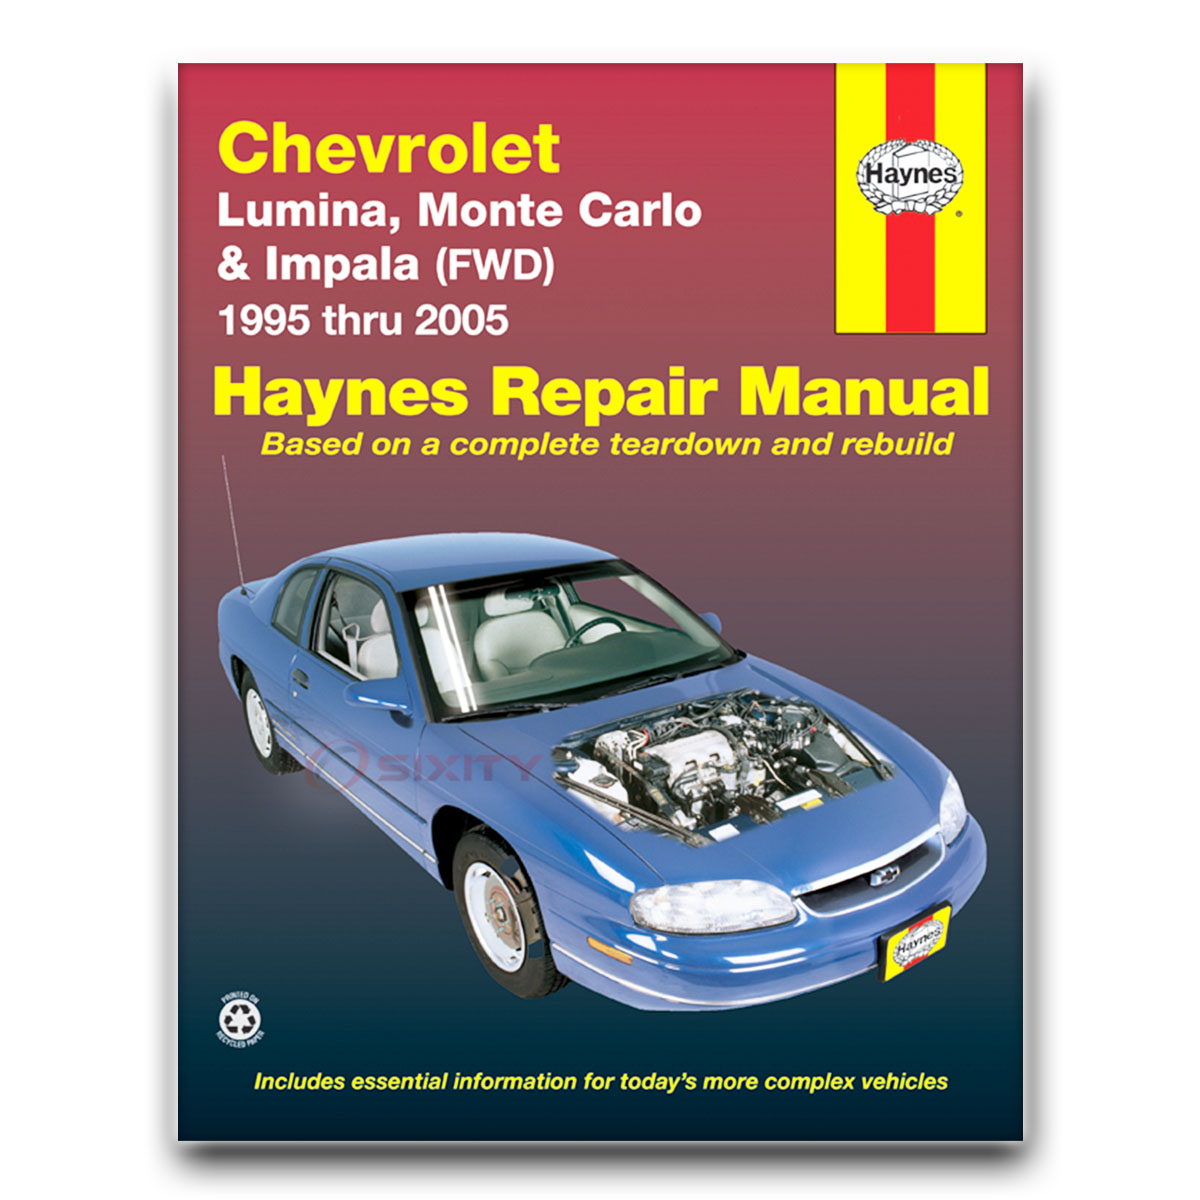 ss oem service manual impala open source user manual u2022 rh dramatic varieties com 1965 Impala 1967 chevy impala repair manual